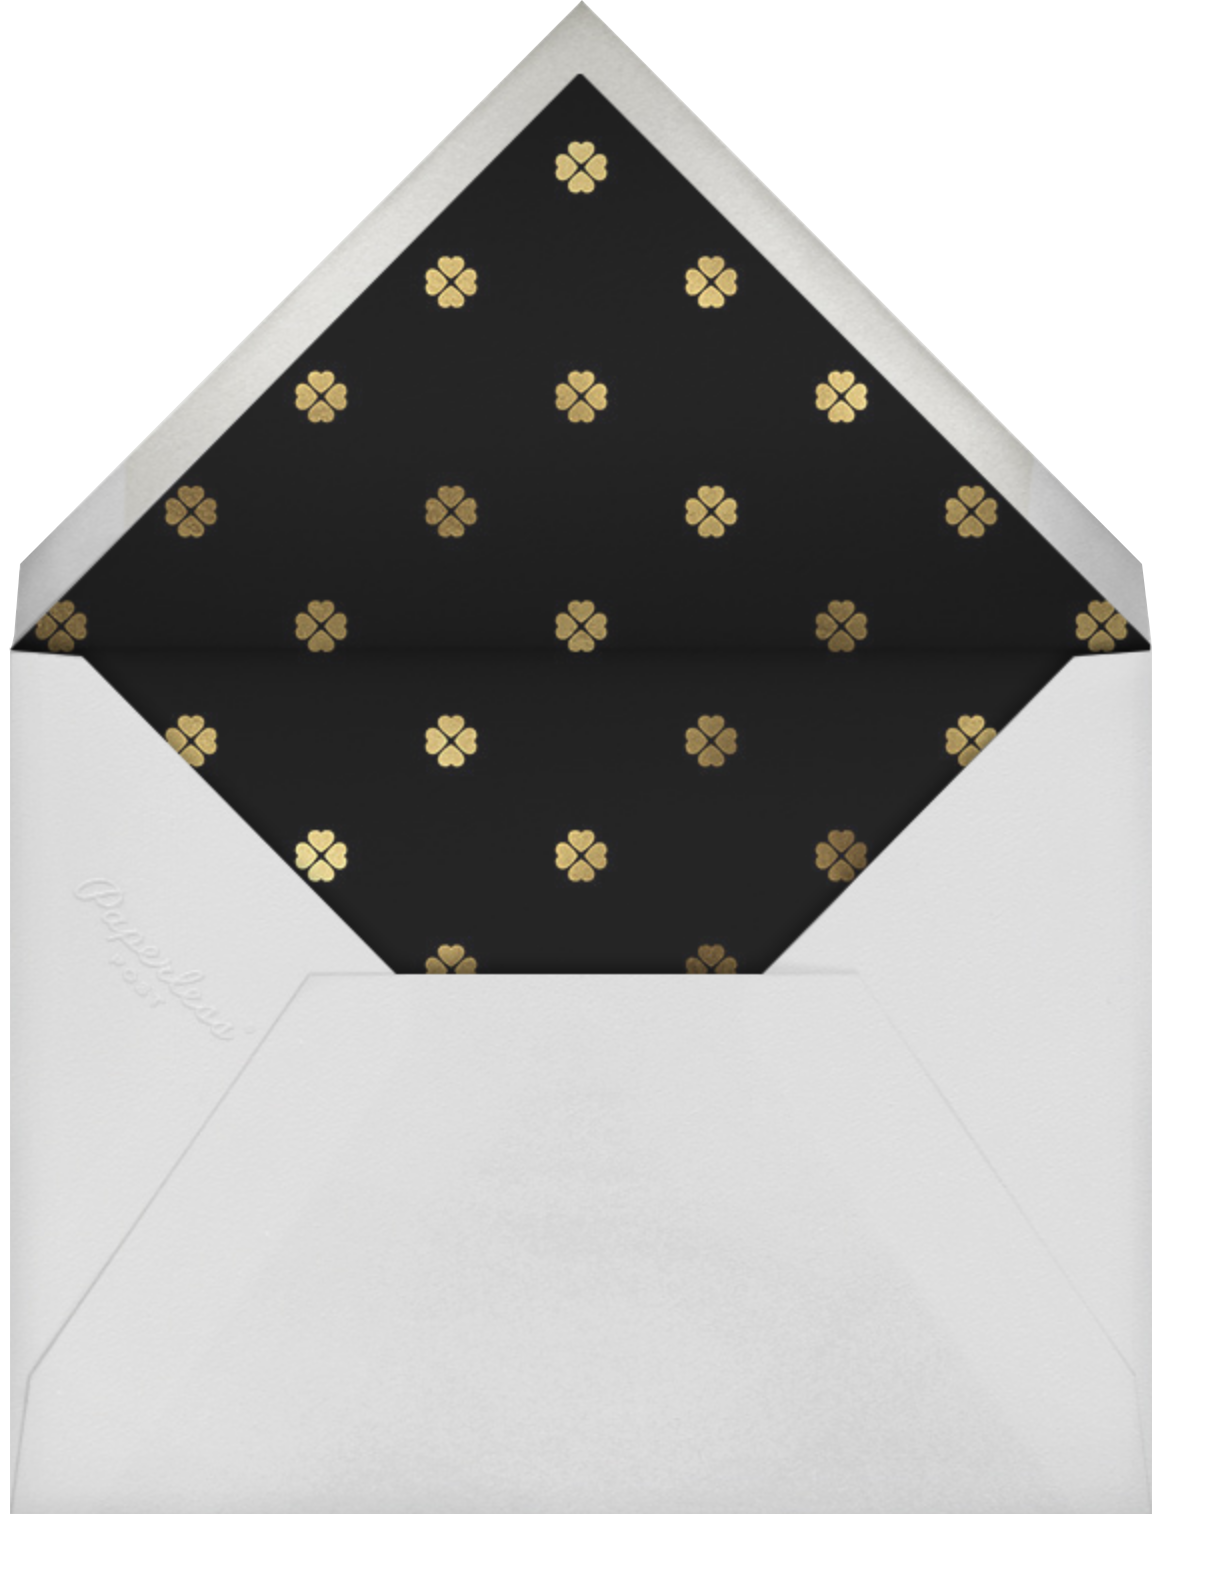 Chunky Floral - Black - kate spade new york - Adult birthday - envelope back